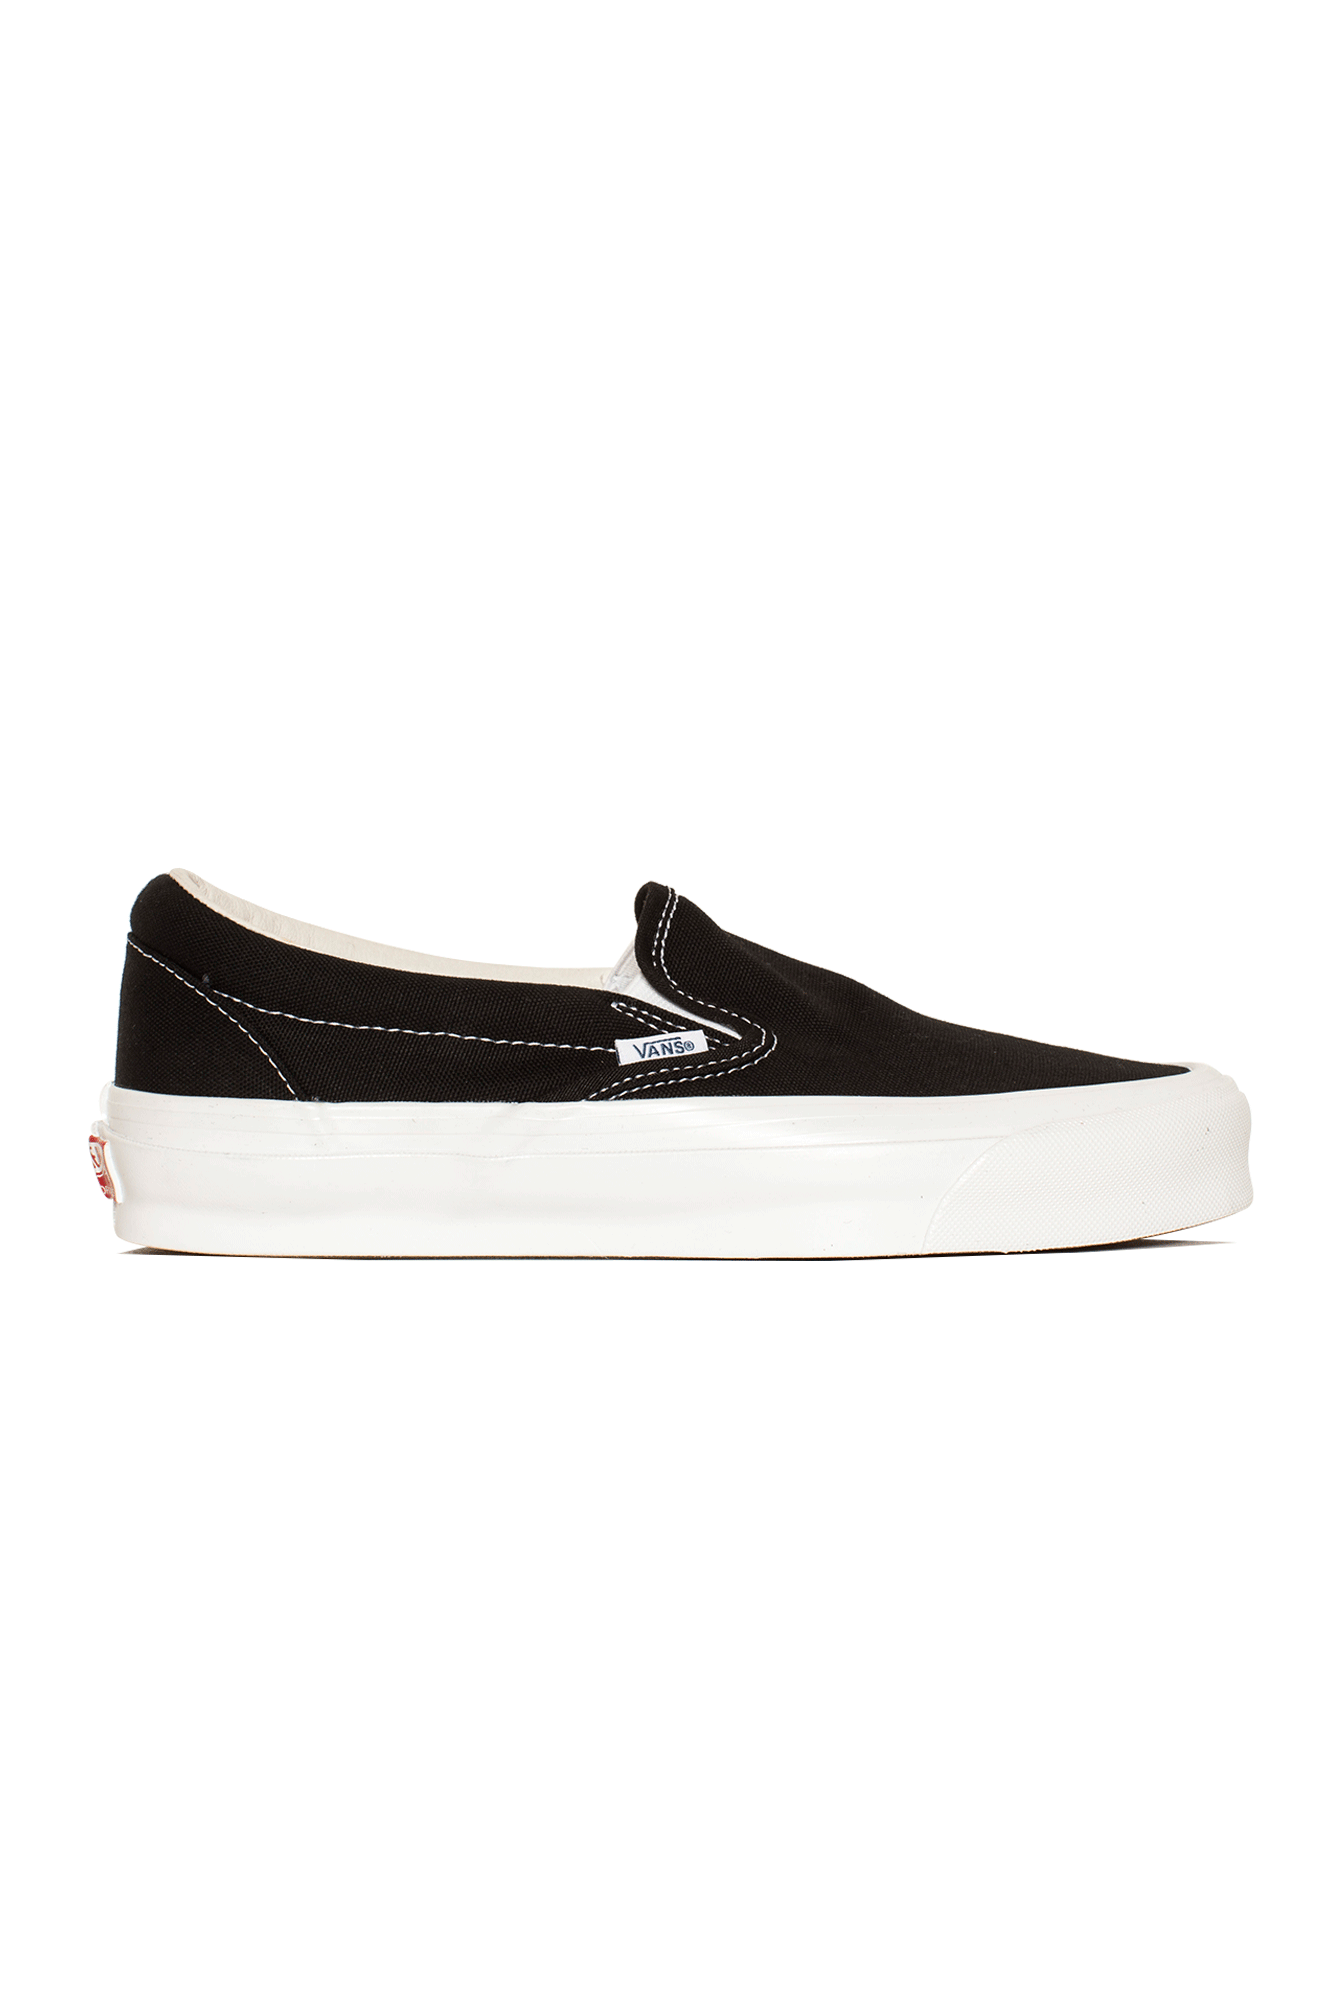 Vans Sneakers OG Classic Slip-On LX Nero VN0A45JKA#000#1WX1#4,5 - One Block Down